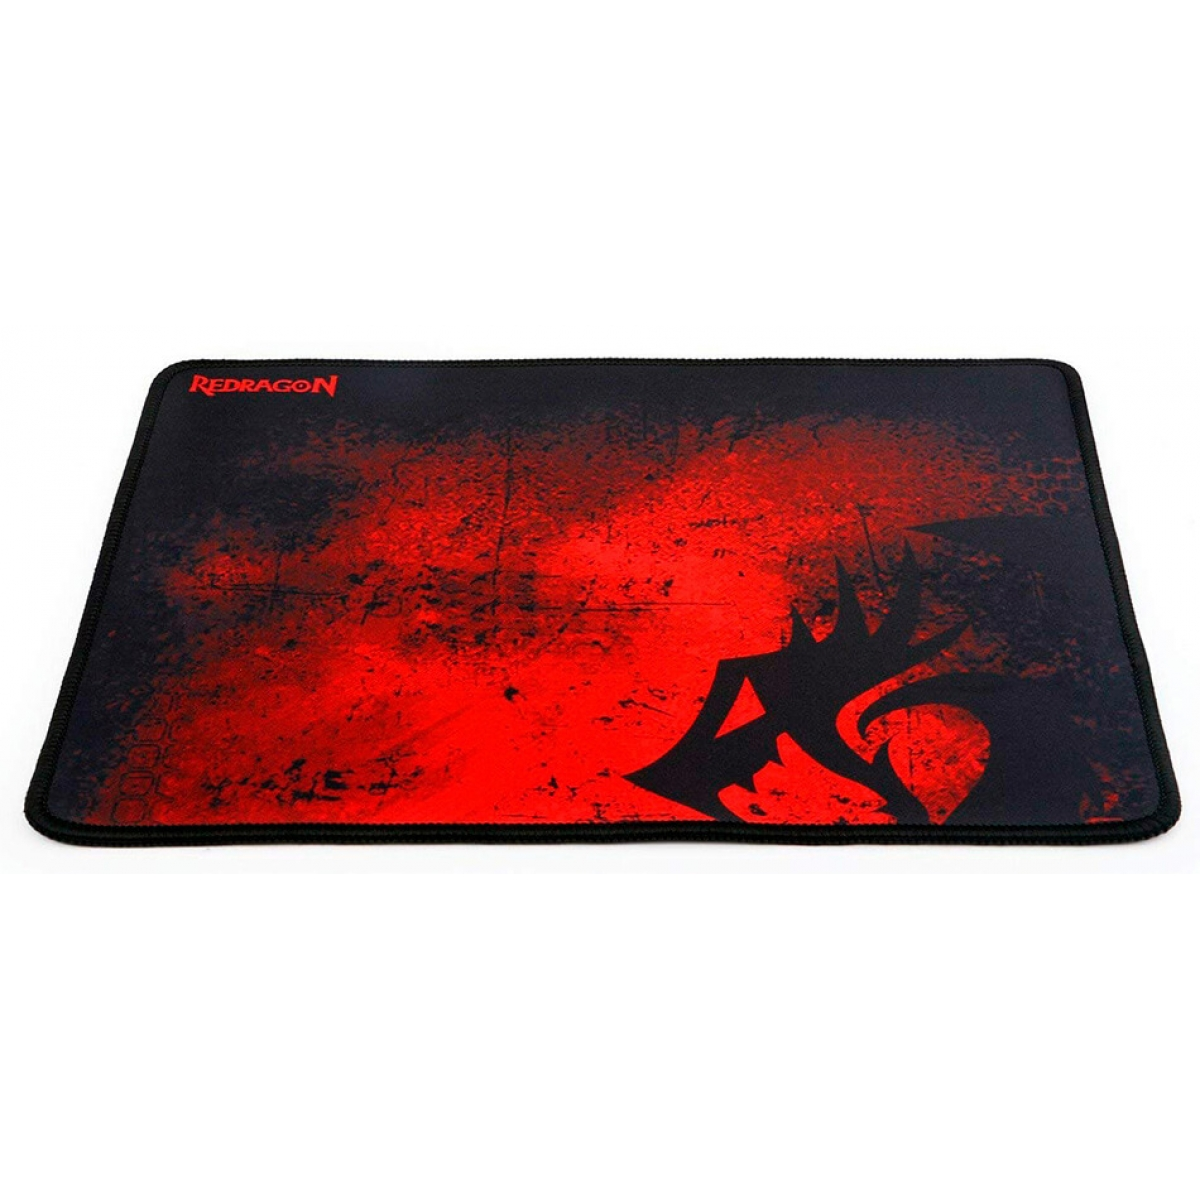 Mousepad Gamer Redragon Pisces P016